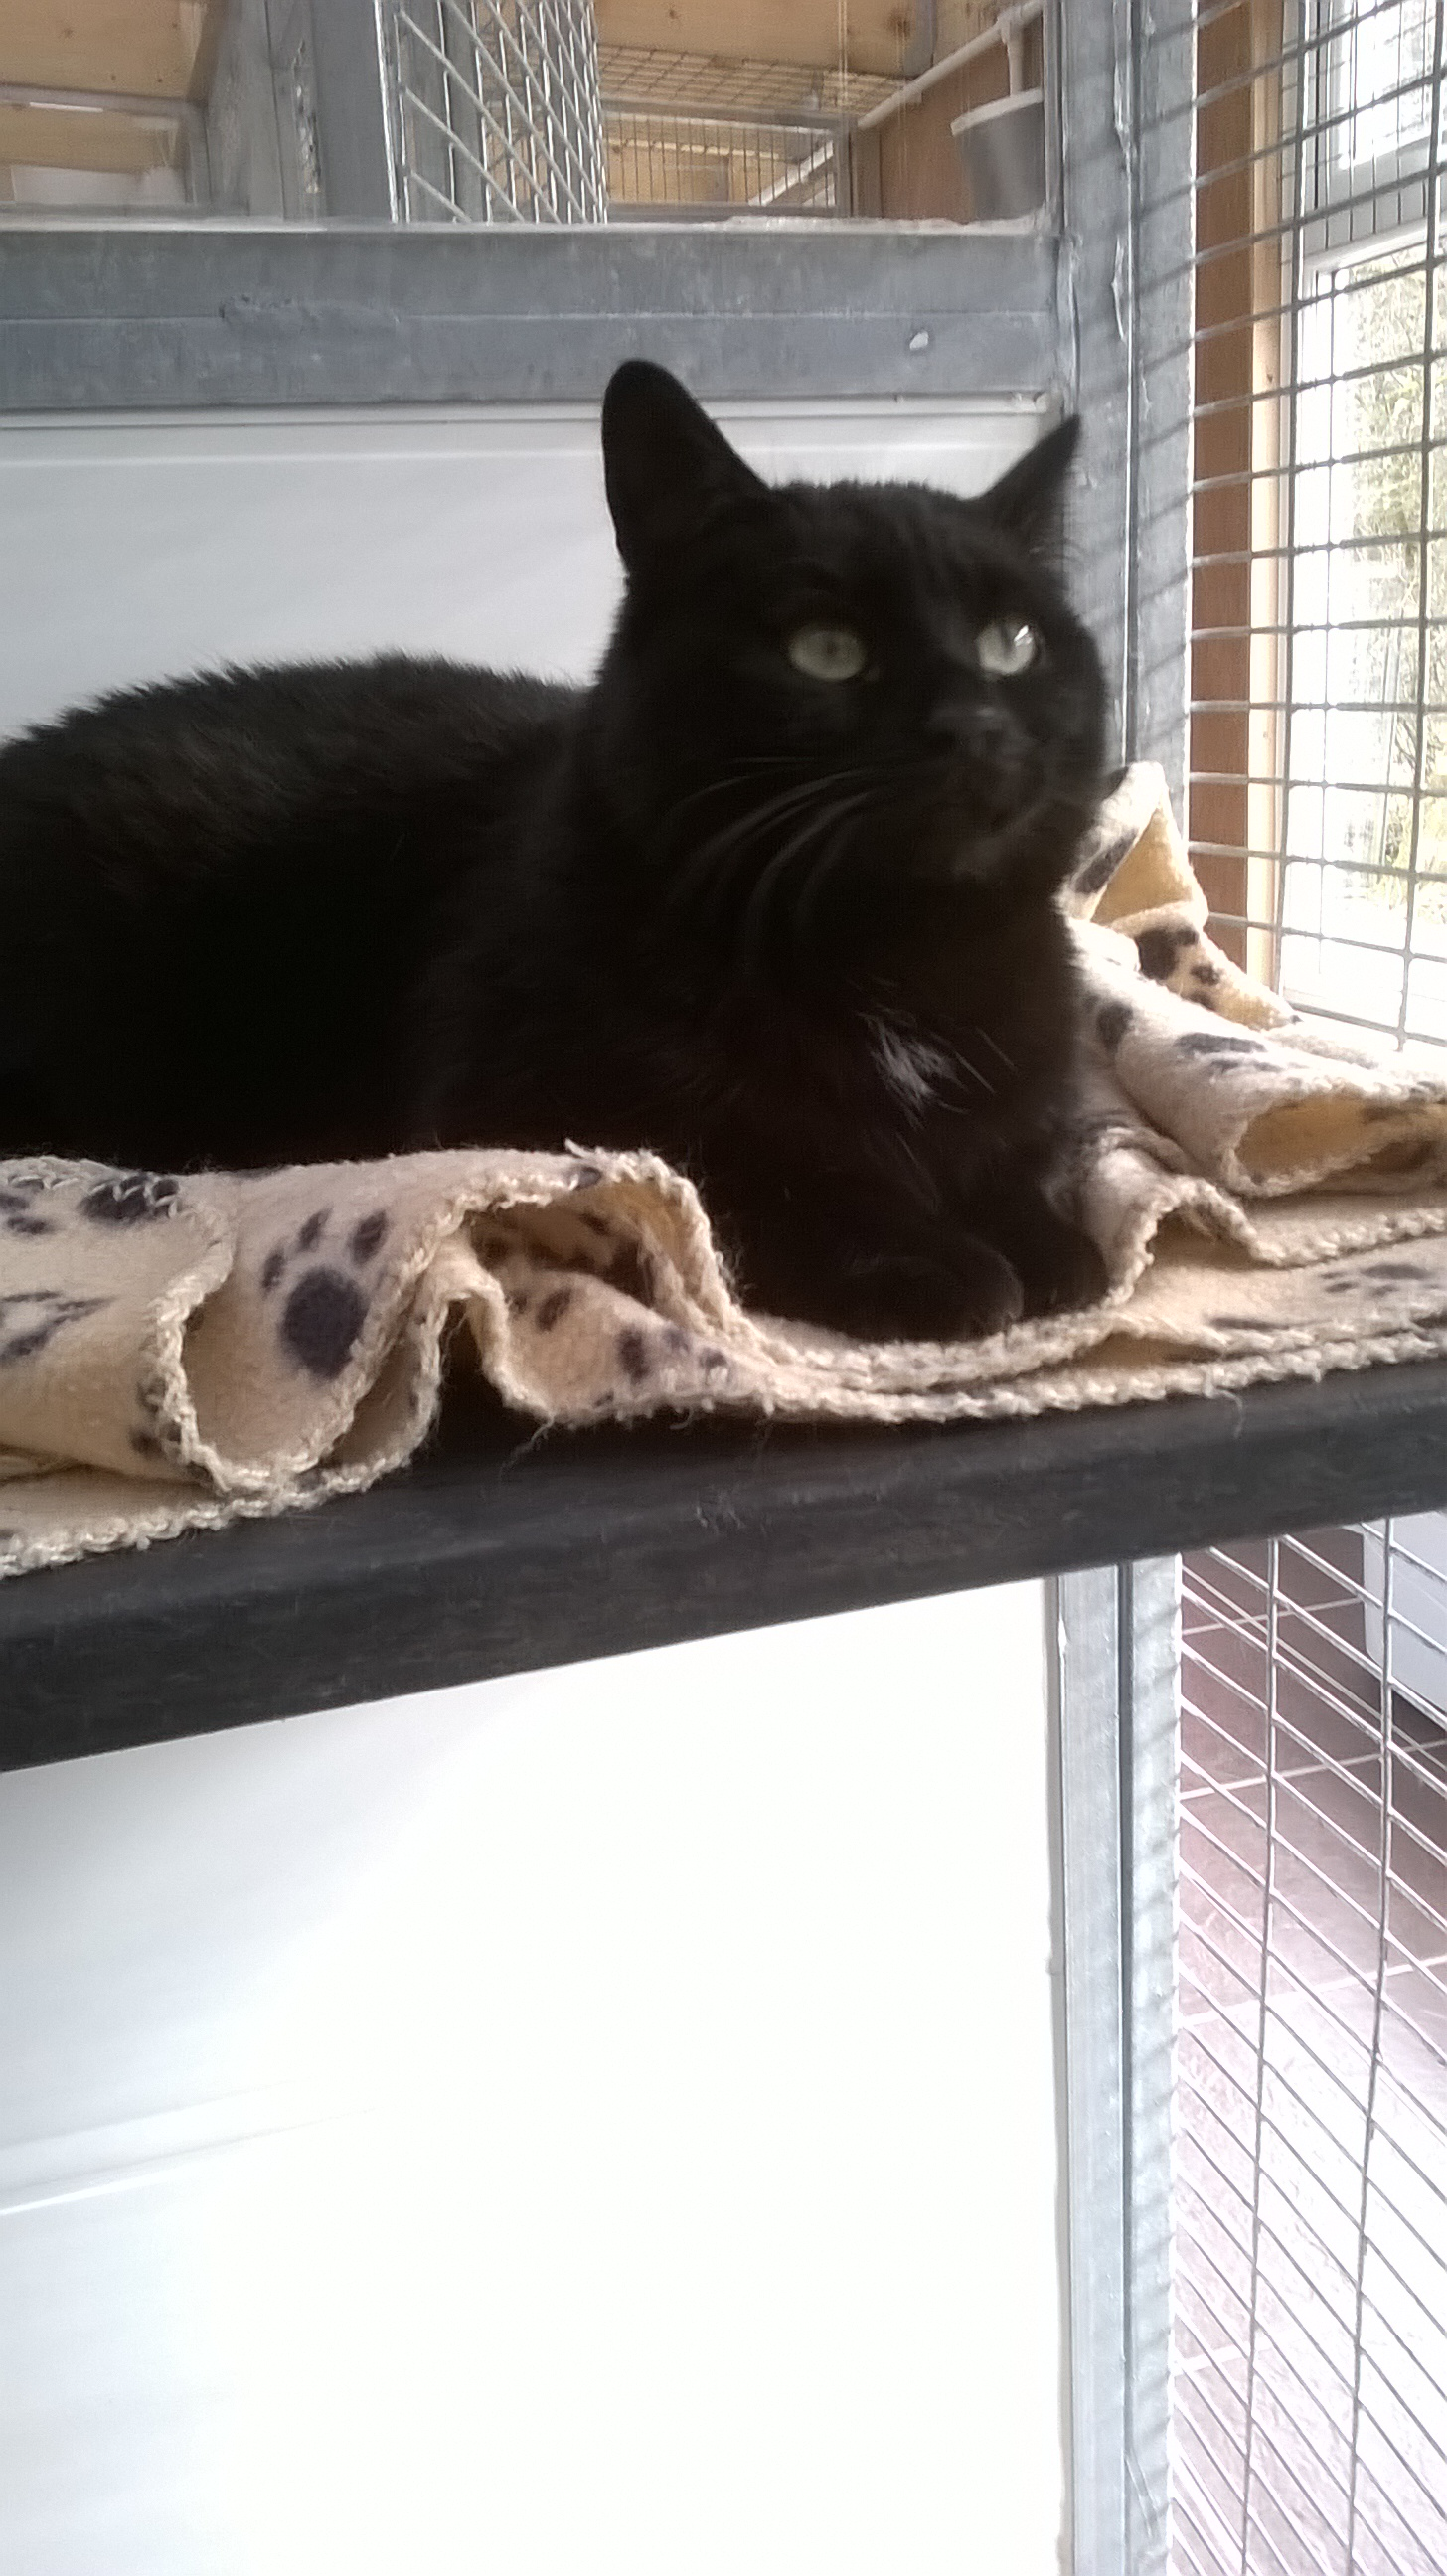 Re-homed: Missy 2 year old female cat